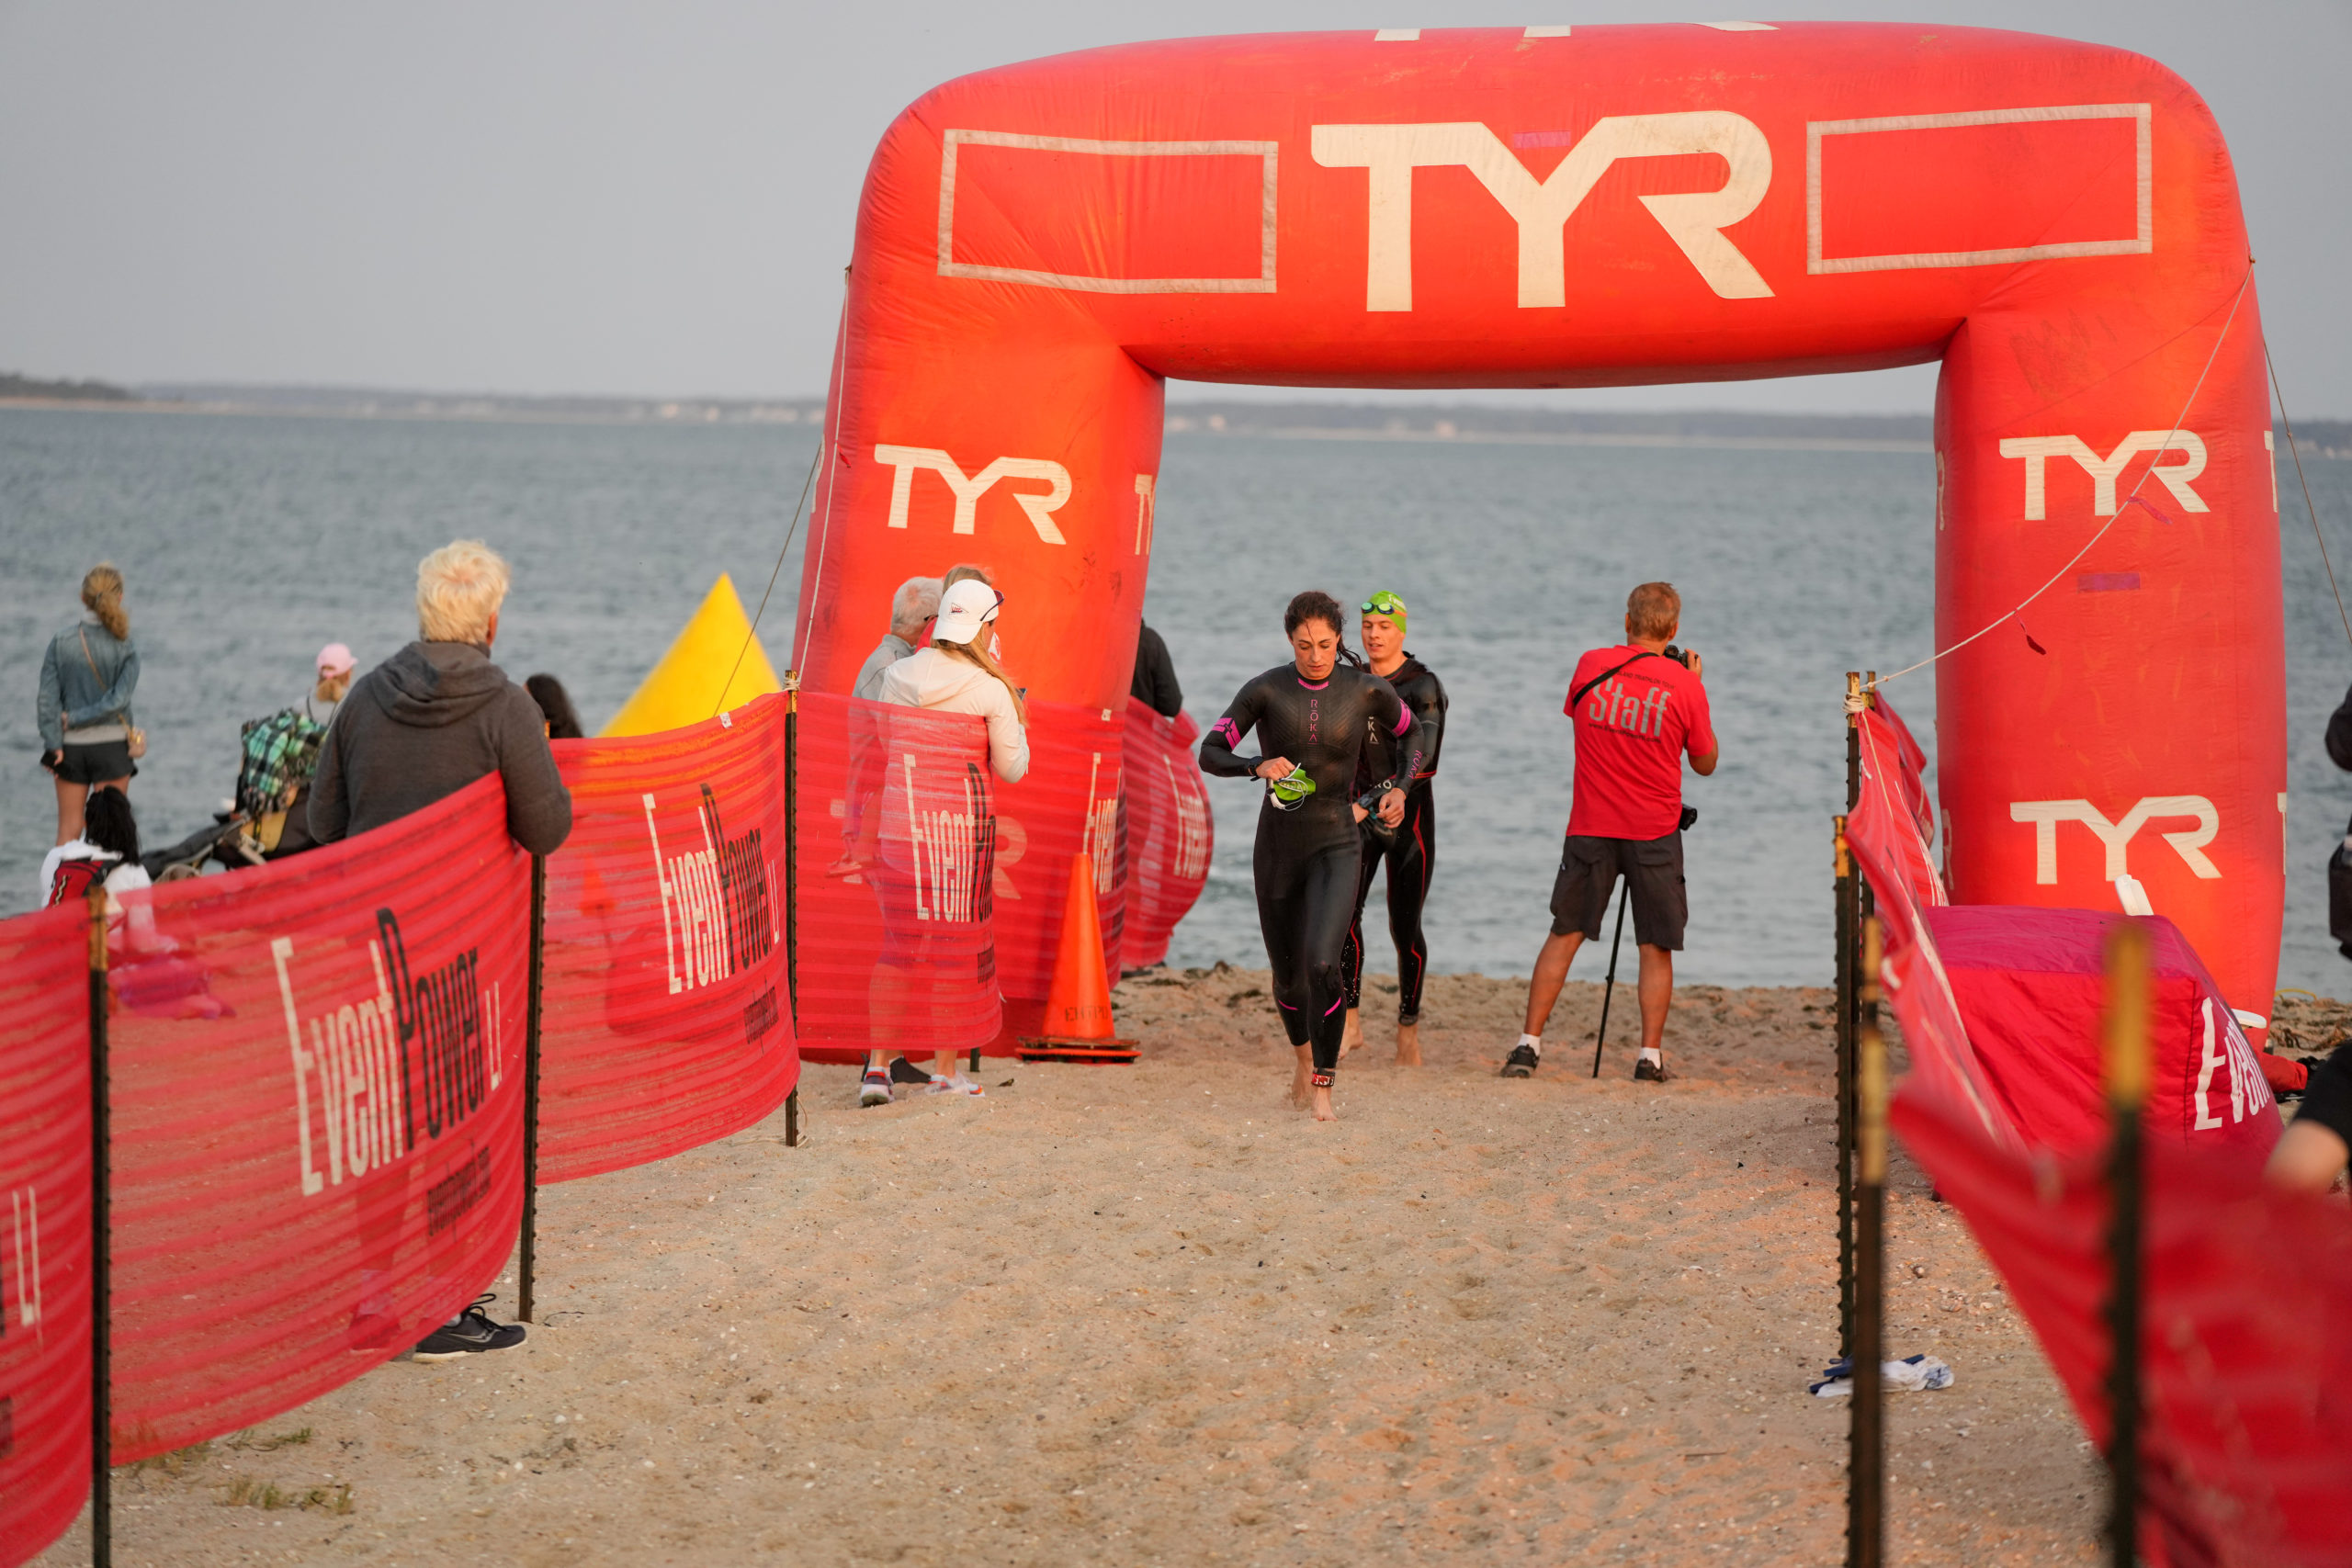 Swimmers head out of the water and head to the transition area.